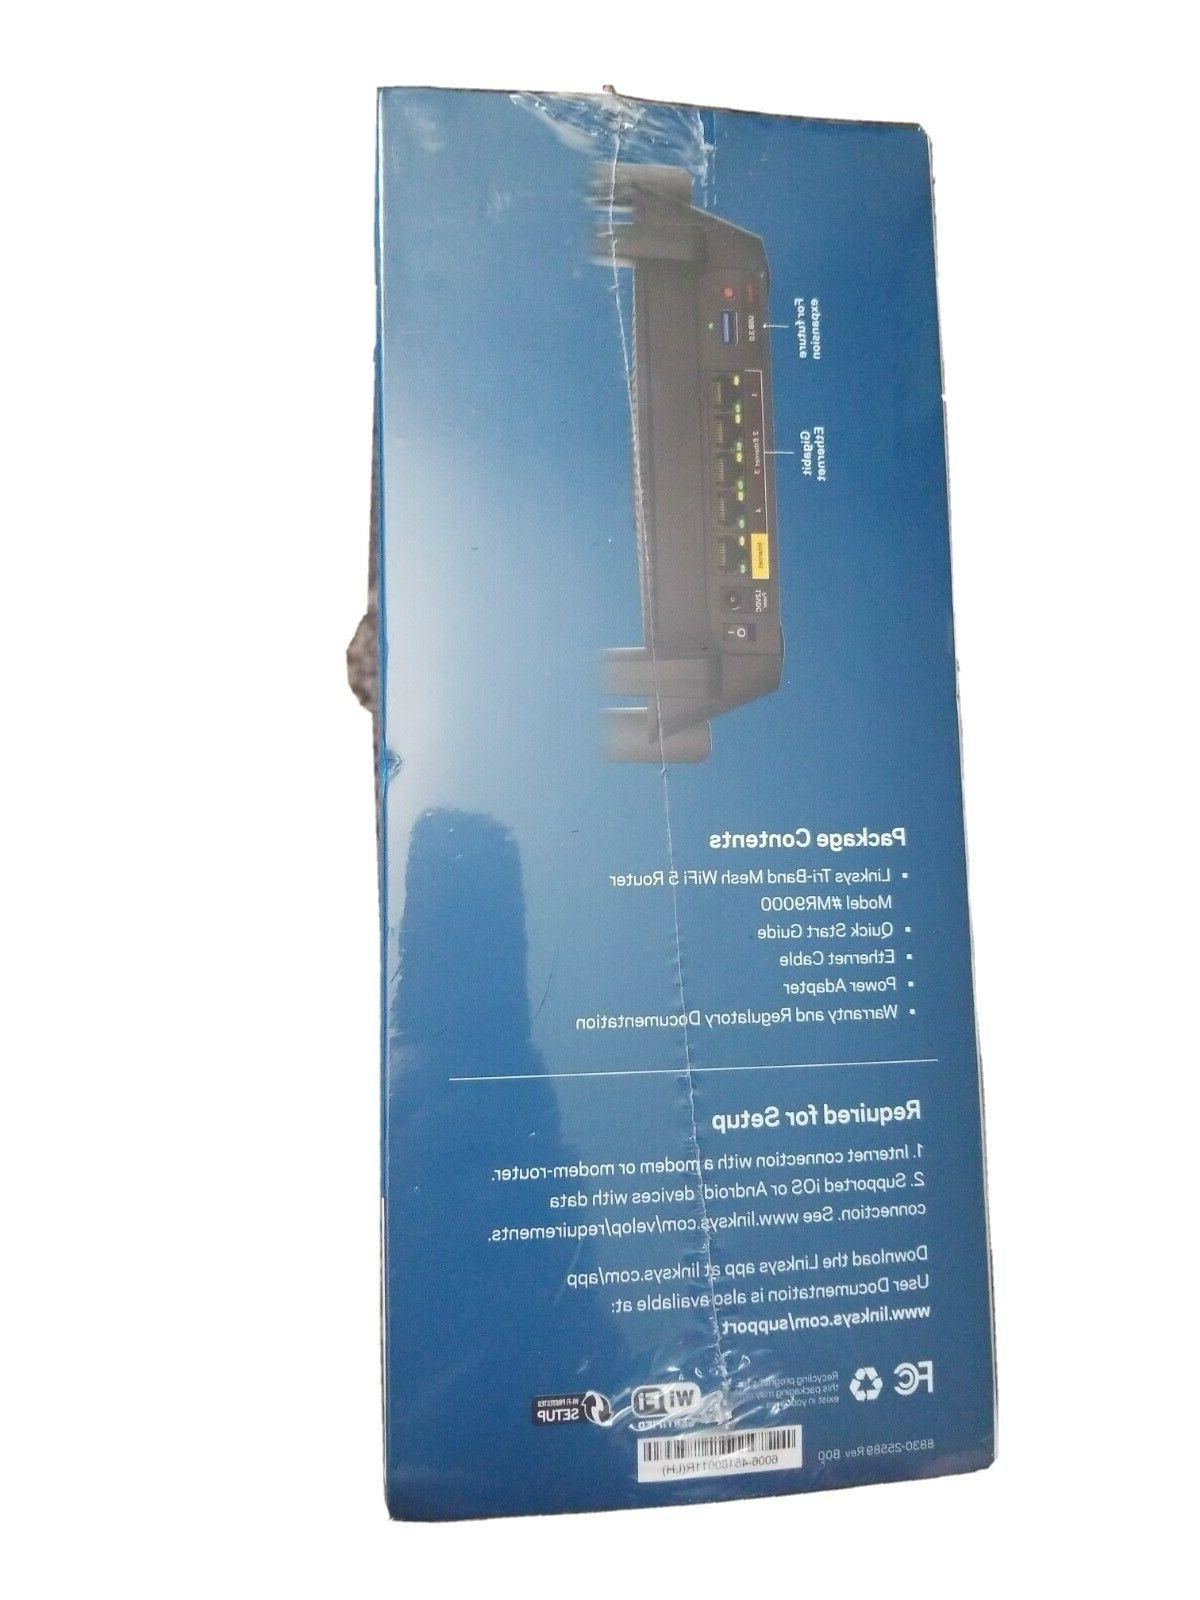 🔥Linksys Tri-Band WIFI Router FACTORY SEALED 🚀